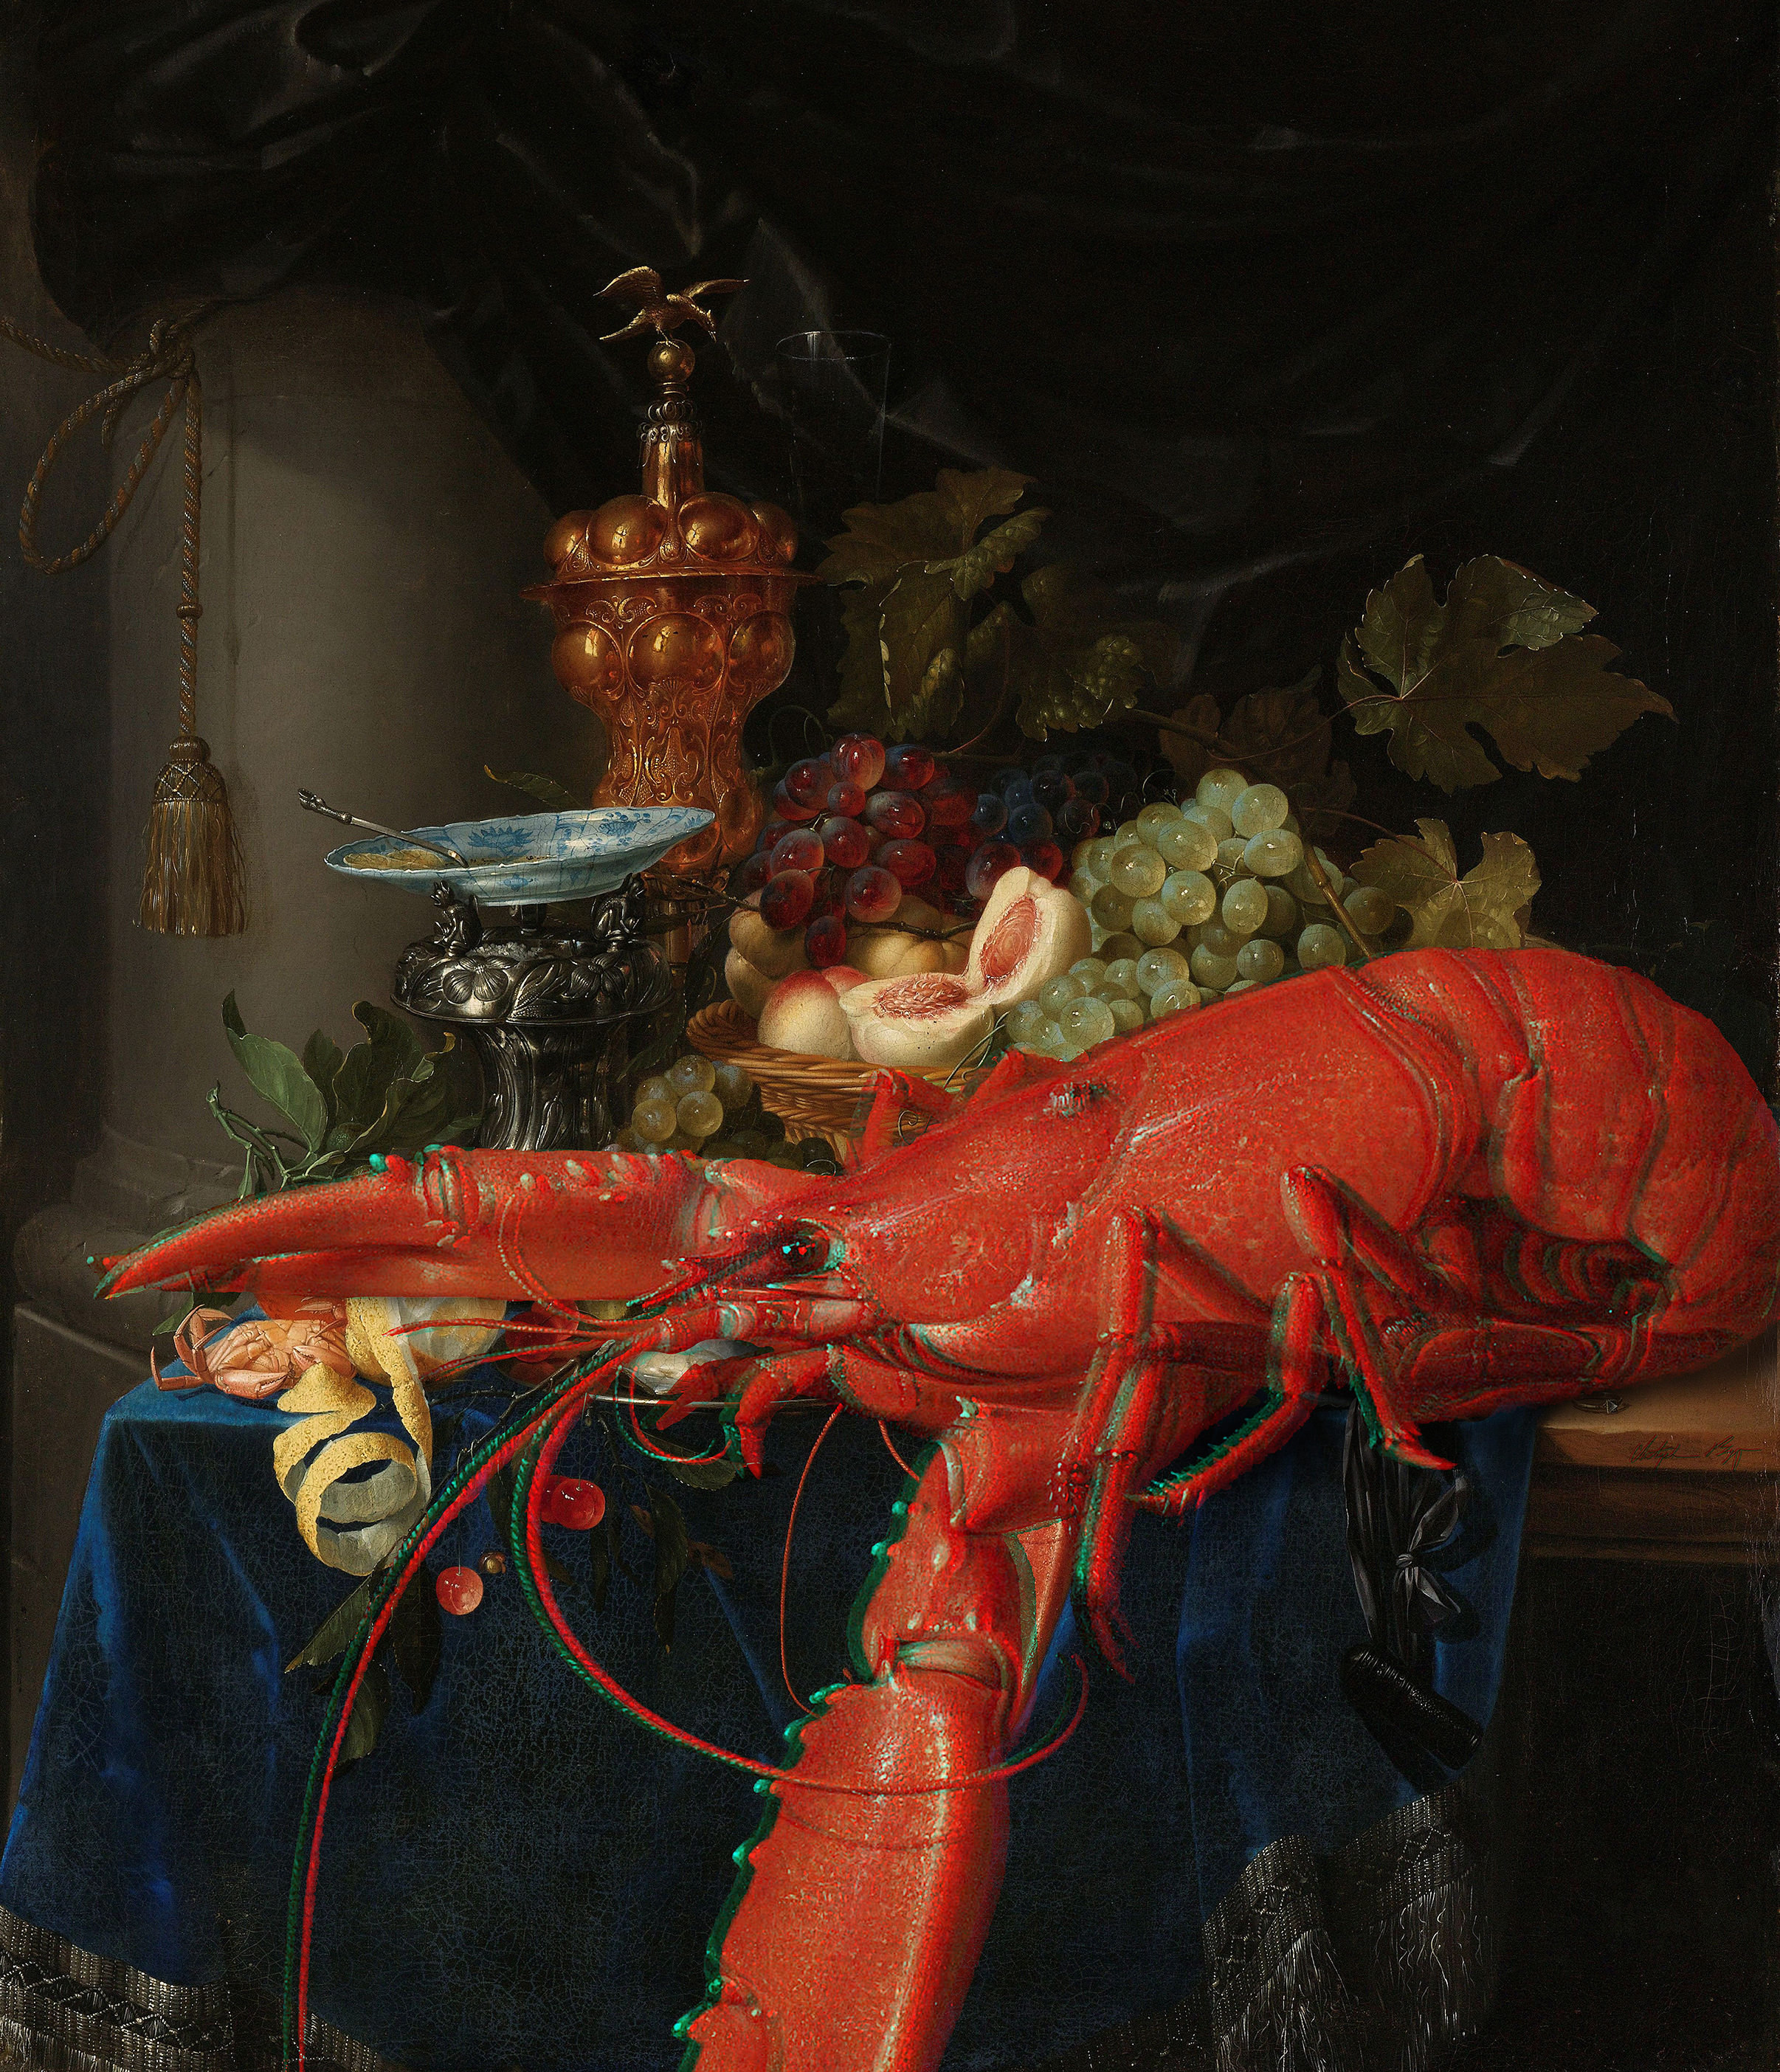 Lobster Anaglyph #5 (Still Life with Golden Goblet, Pieter de Ring, 1640-1660)  2017 3D anaglyph digital UV adhesive wall fabric, 3D anaglyph glasses LOBSTER 5: 39 x 33.5 inches